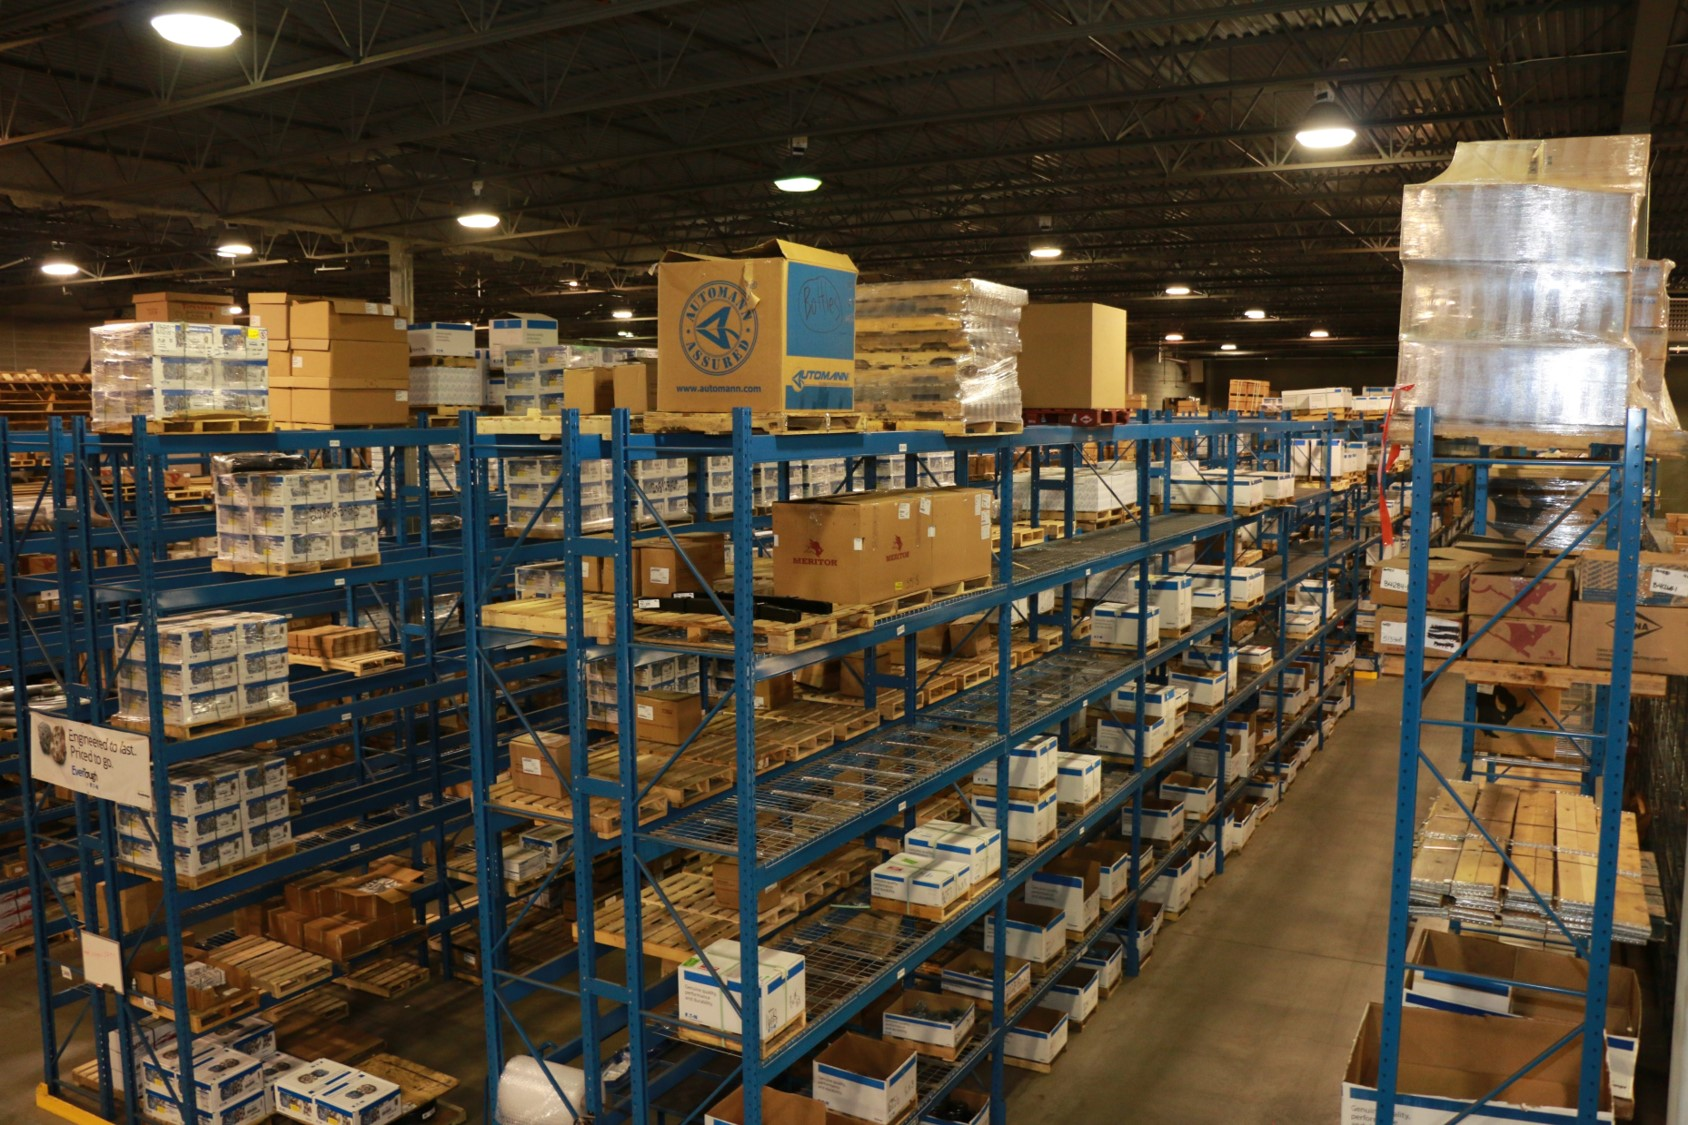 Heavy Duty Truck Parts for the Aftermarket - Pacific Truck